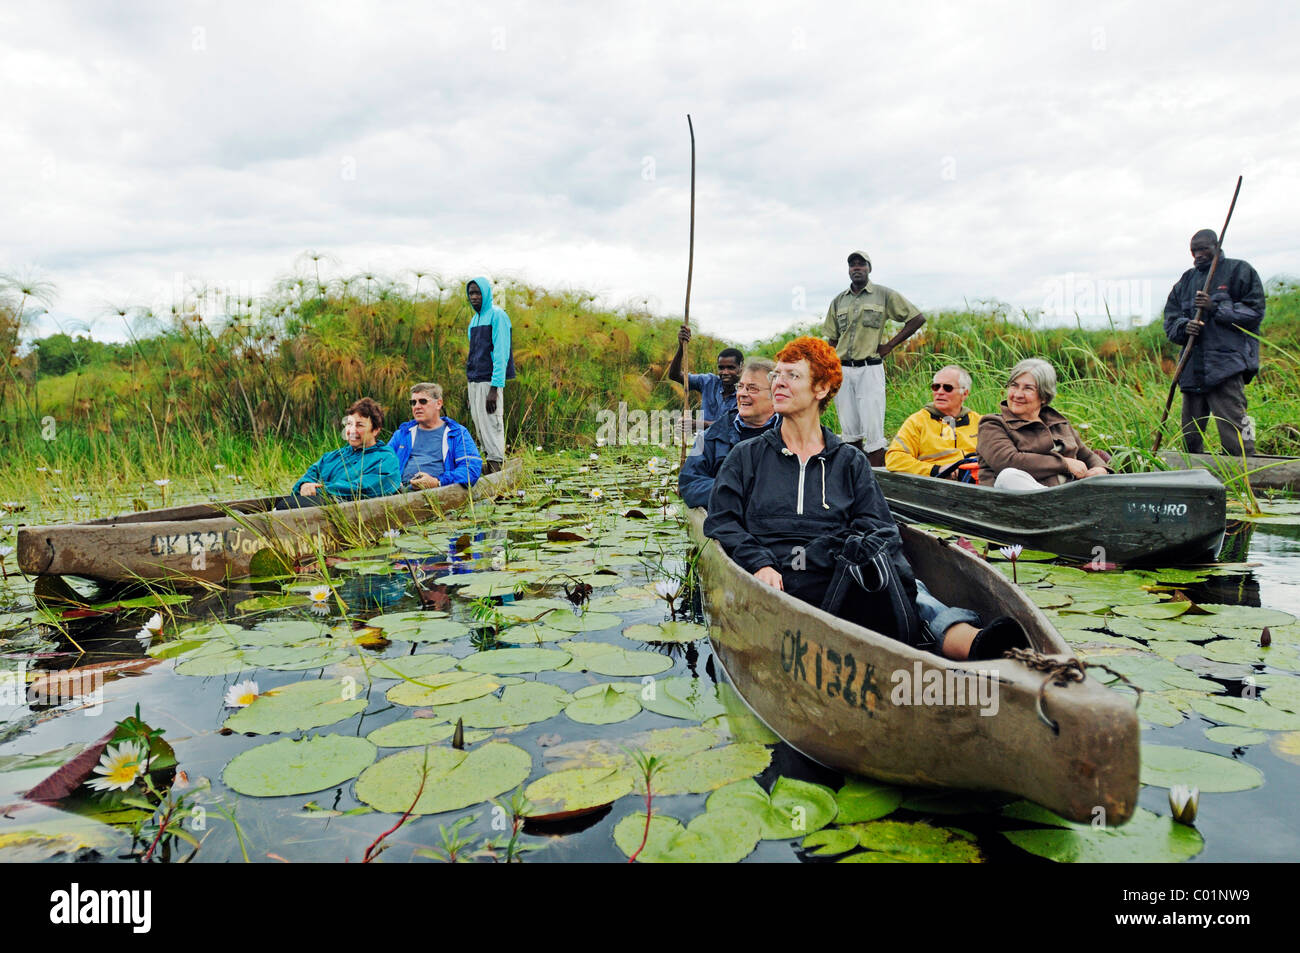 Guides and boatmen with poles in mokoro or makoro canoes, tourists in the back of the boats, Okavango Delta, Botswana, - Stock Image